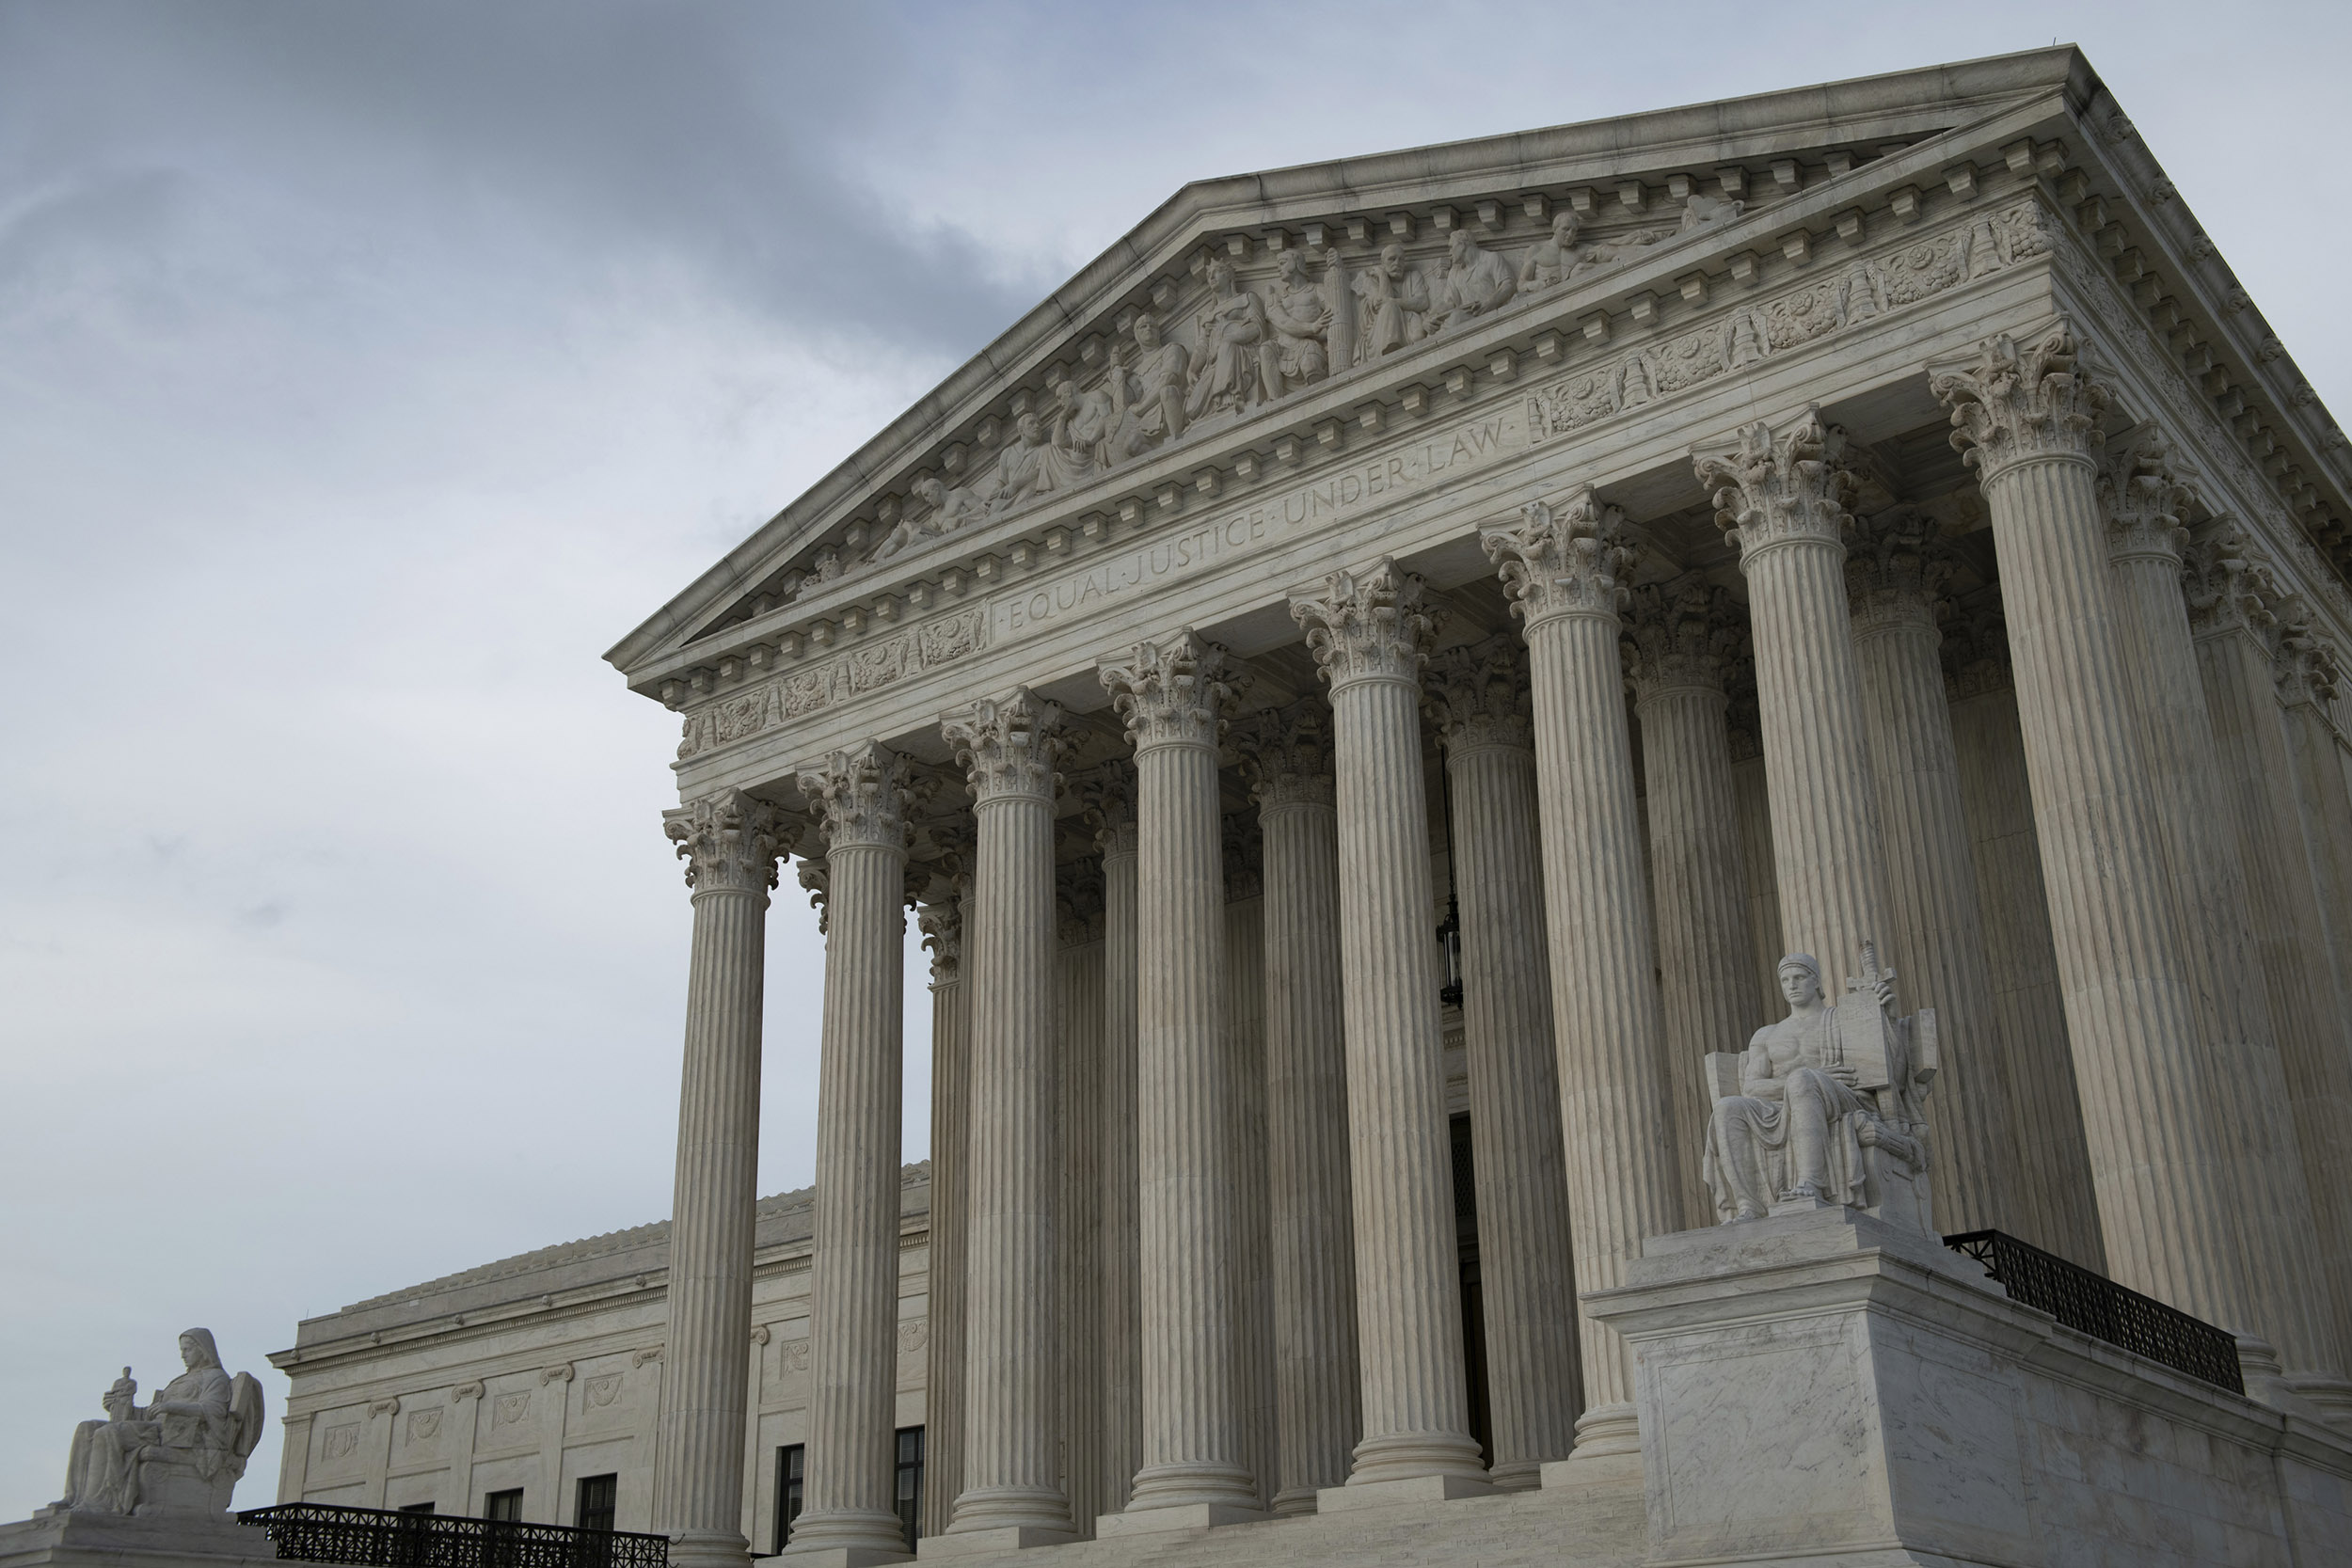 The United States Supreme Court in Washington, D.C., on May 28.